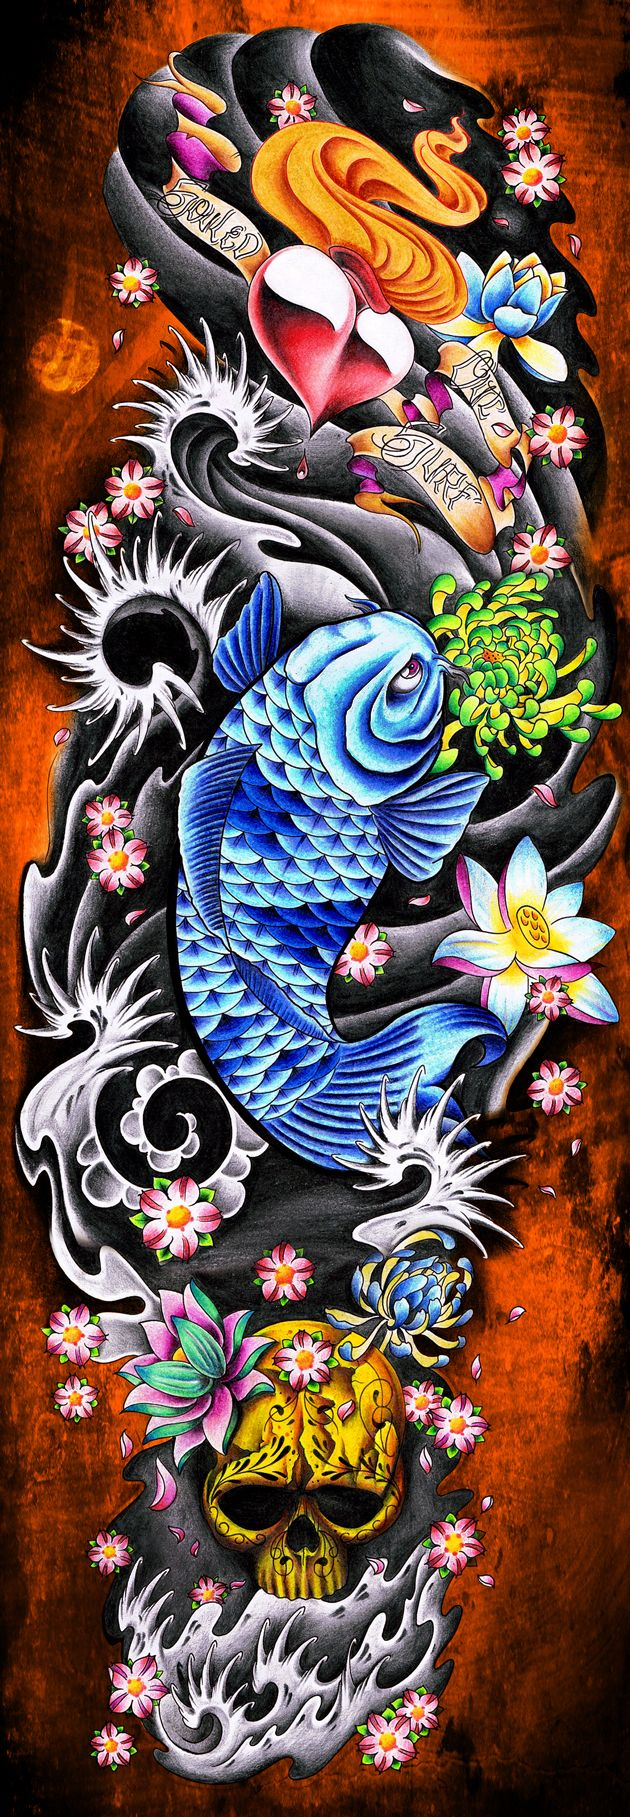 Surfboard Design Japanese Tattoo Art Japanese Sleeve Tattoos Boat Tattoo